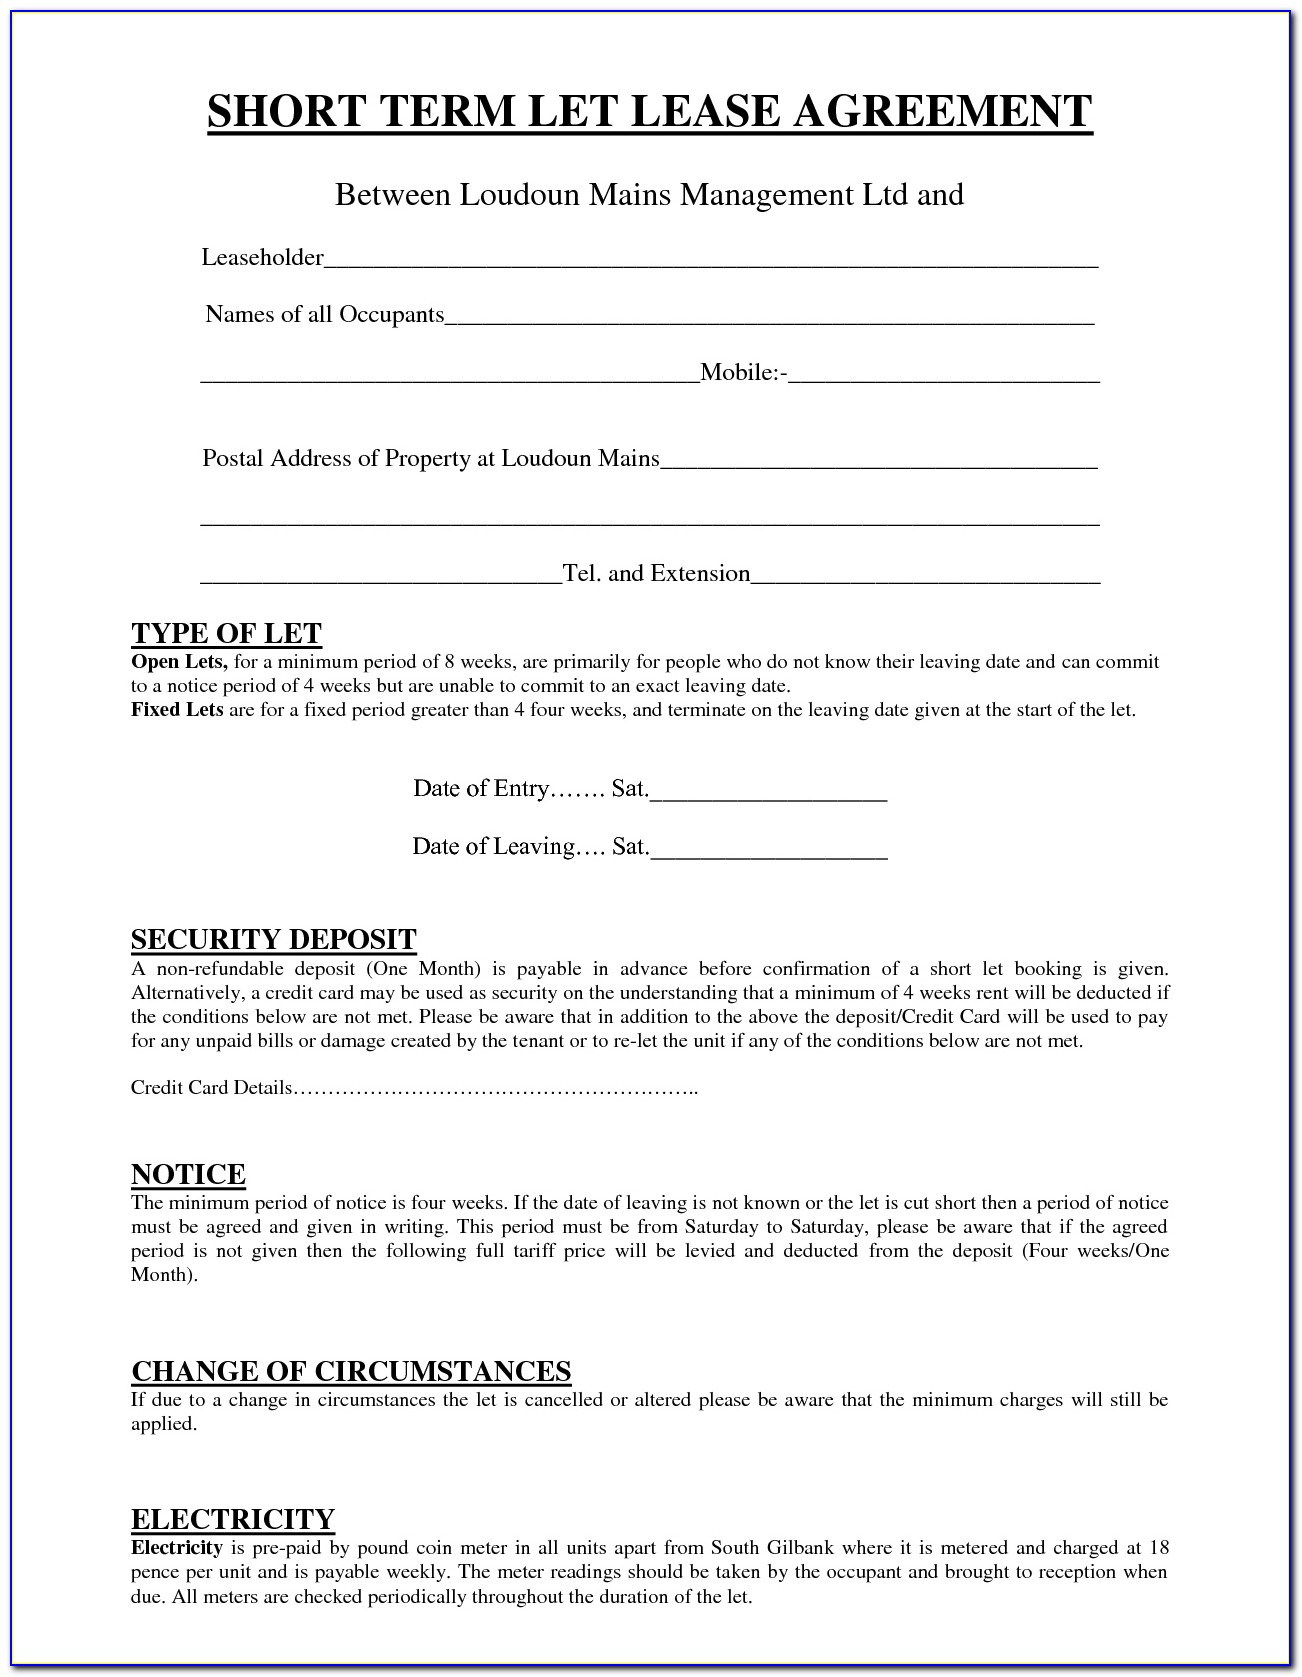 Short Term Lease Agreement Template Free